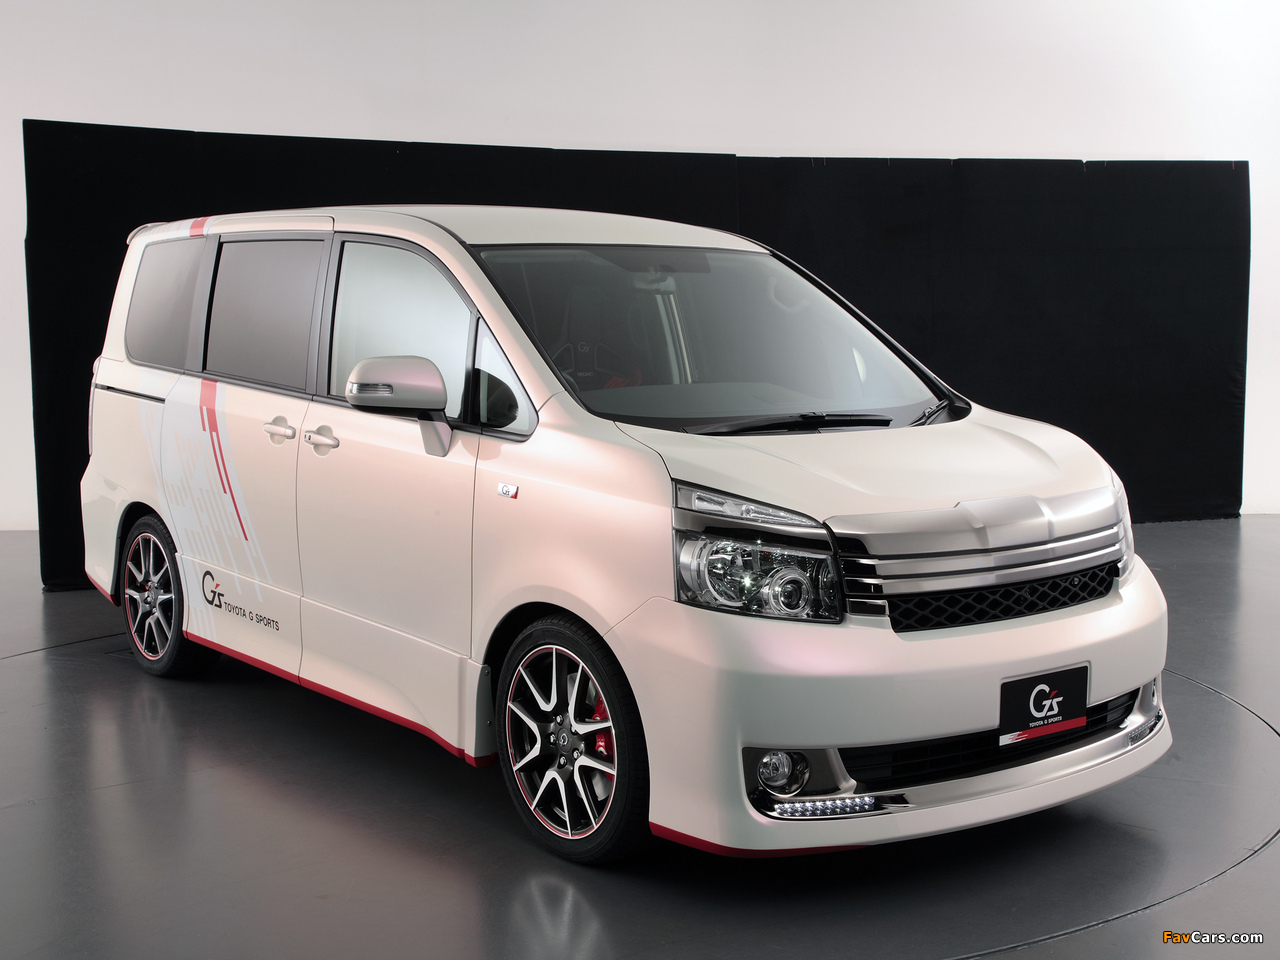 Toyota Voxy G Sports Concept 2010 images (1280 x 960)